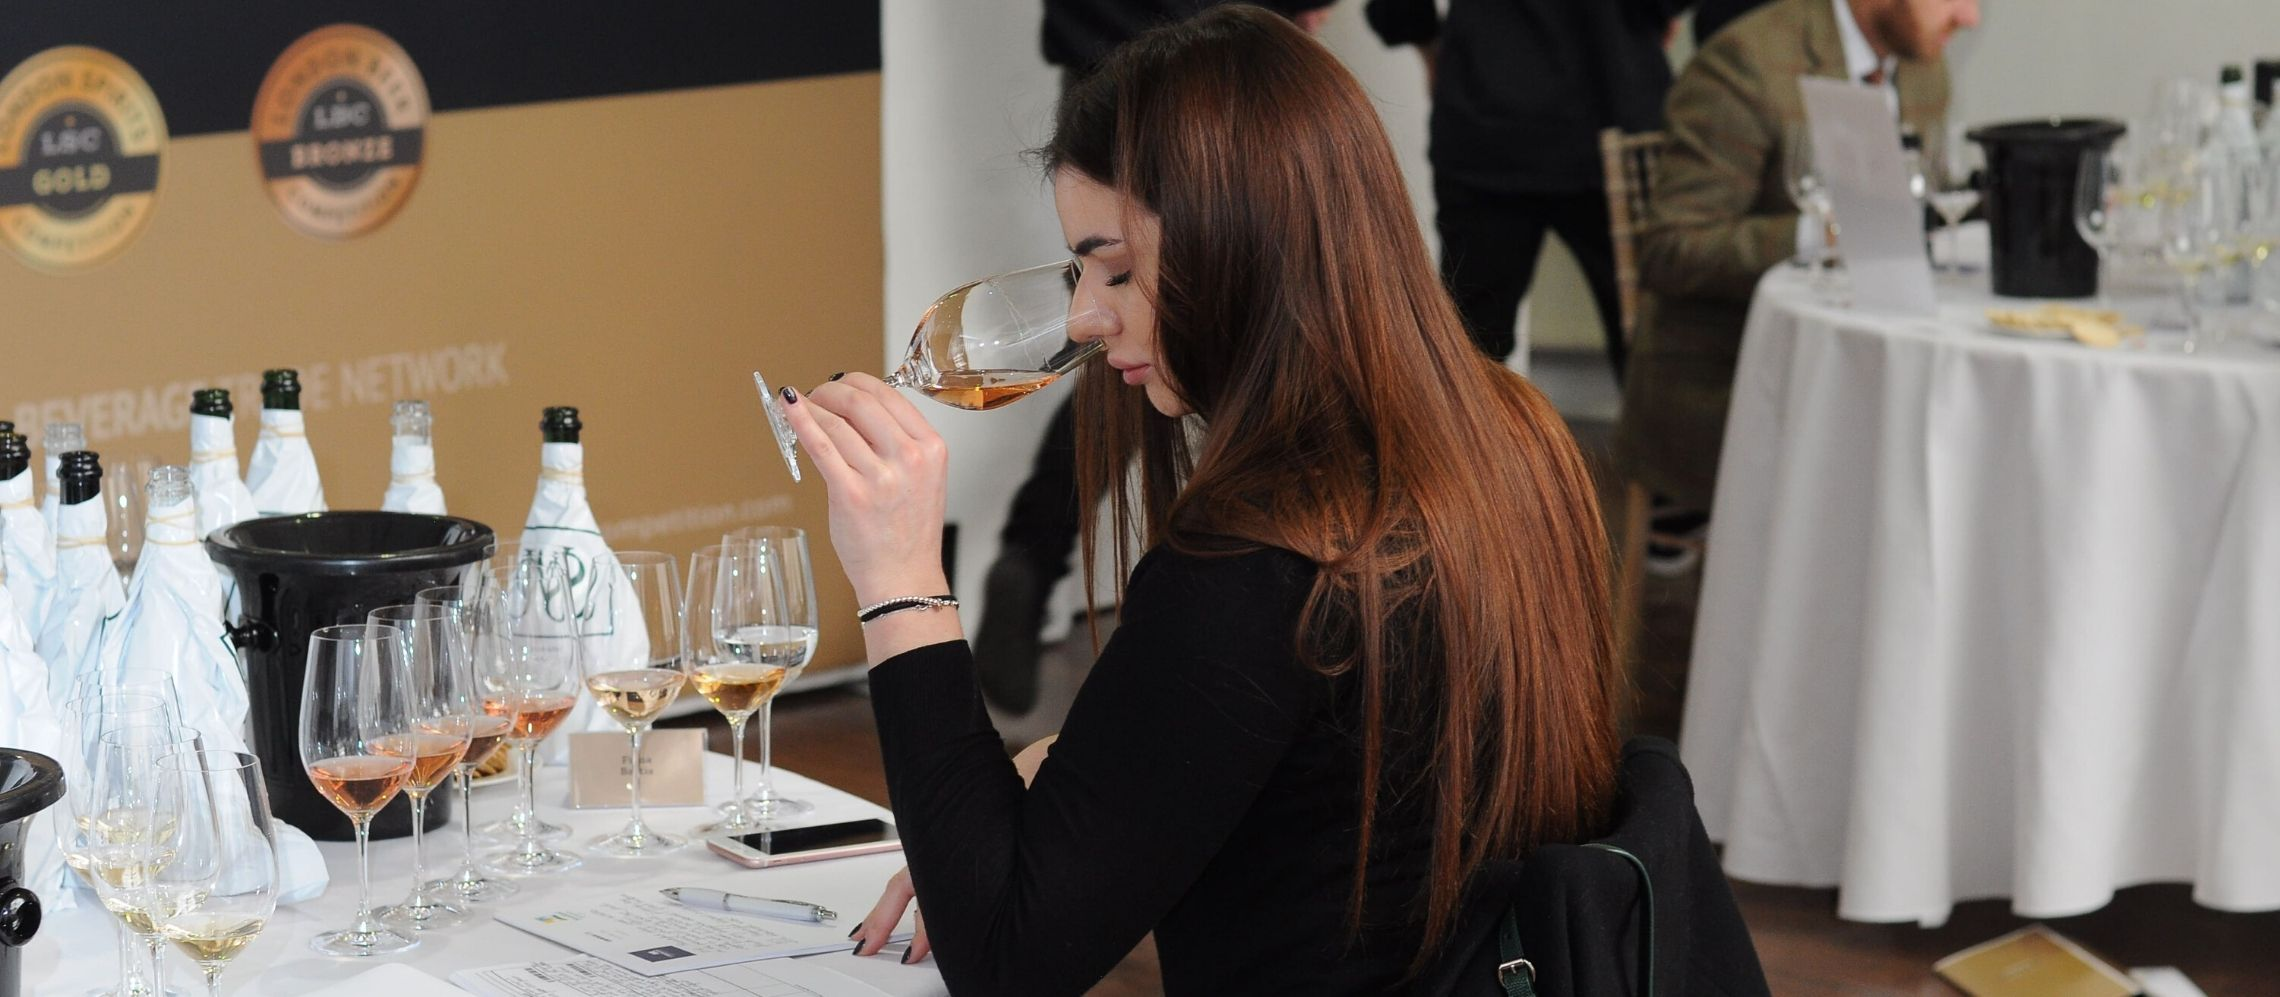 Photo for: The Smashing 3rd Edition of London Wine Competition